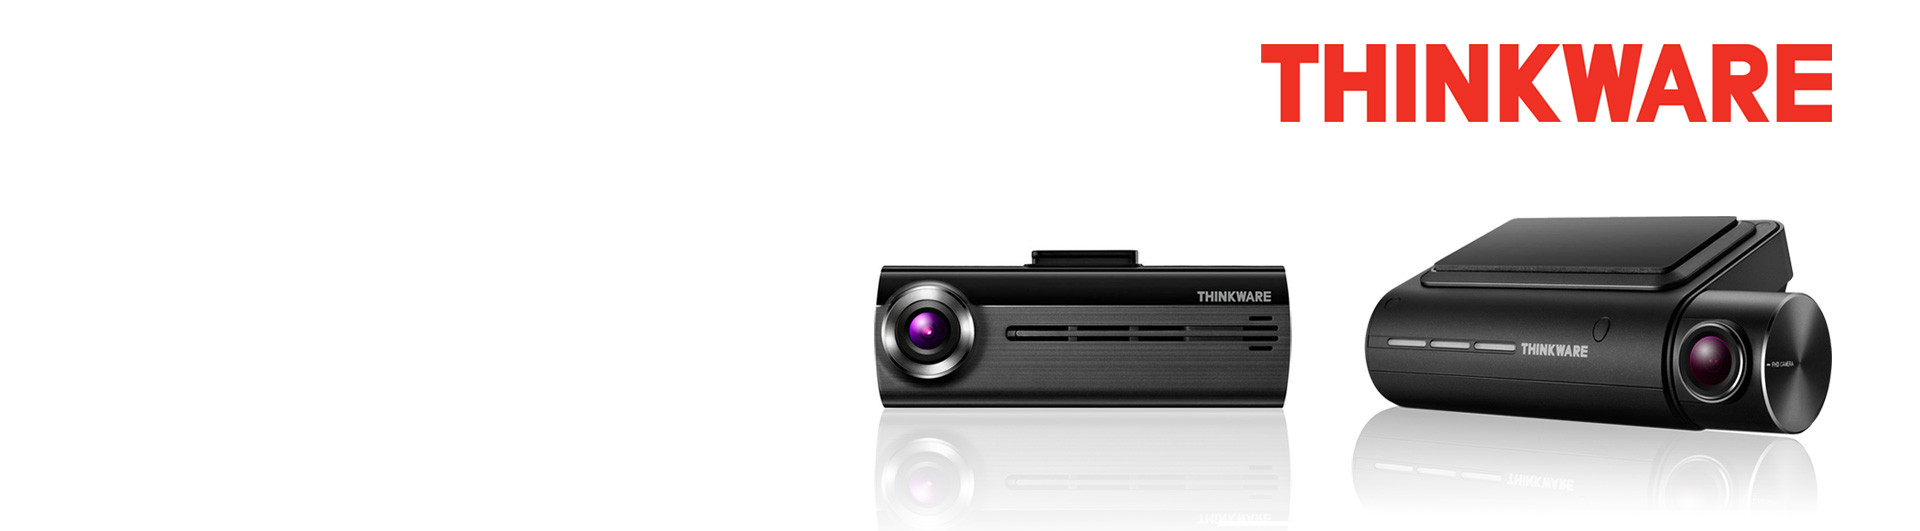 Thinkware F800 Pro and FA200 Dashcams For Sale Banner